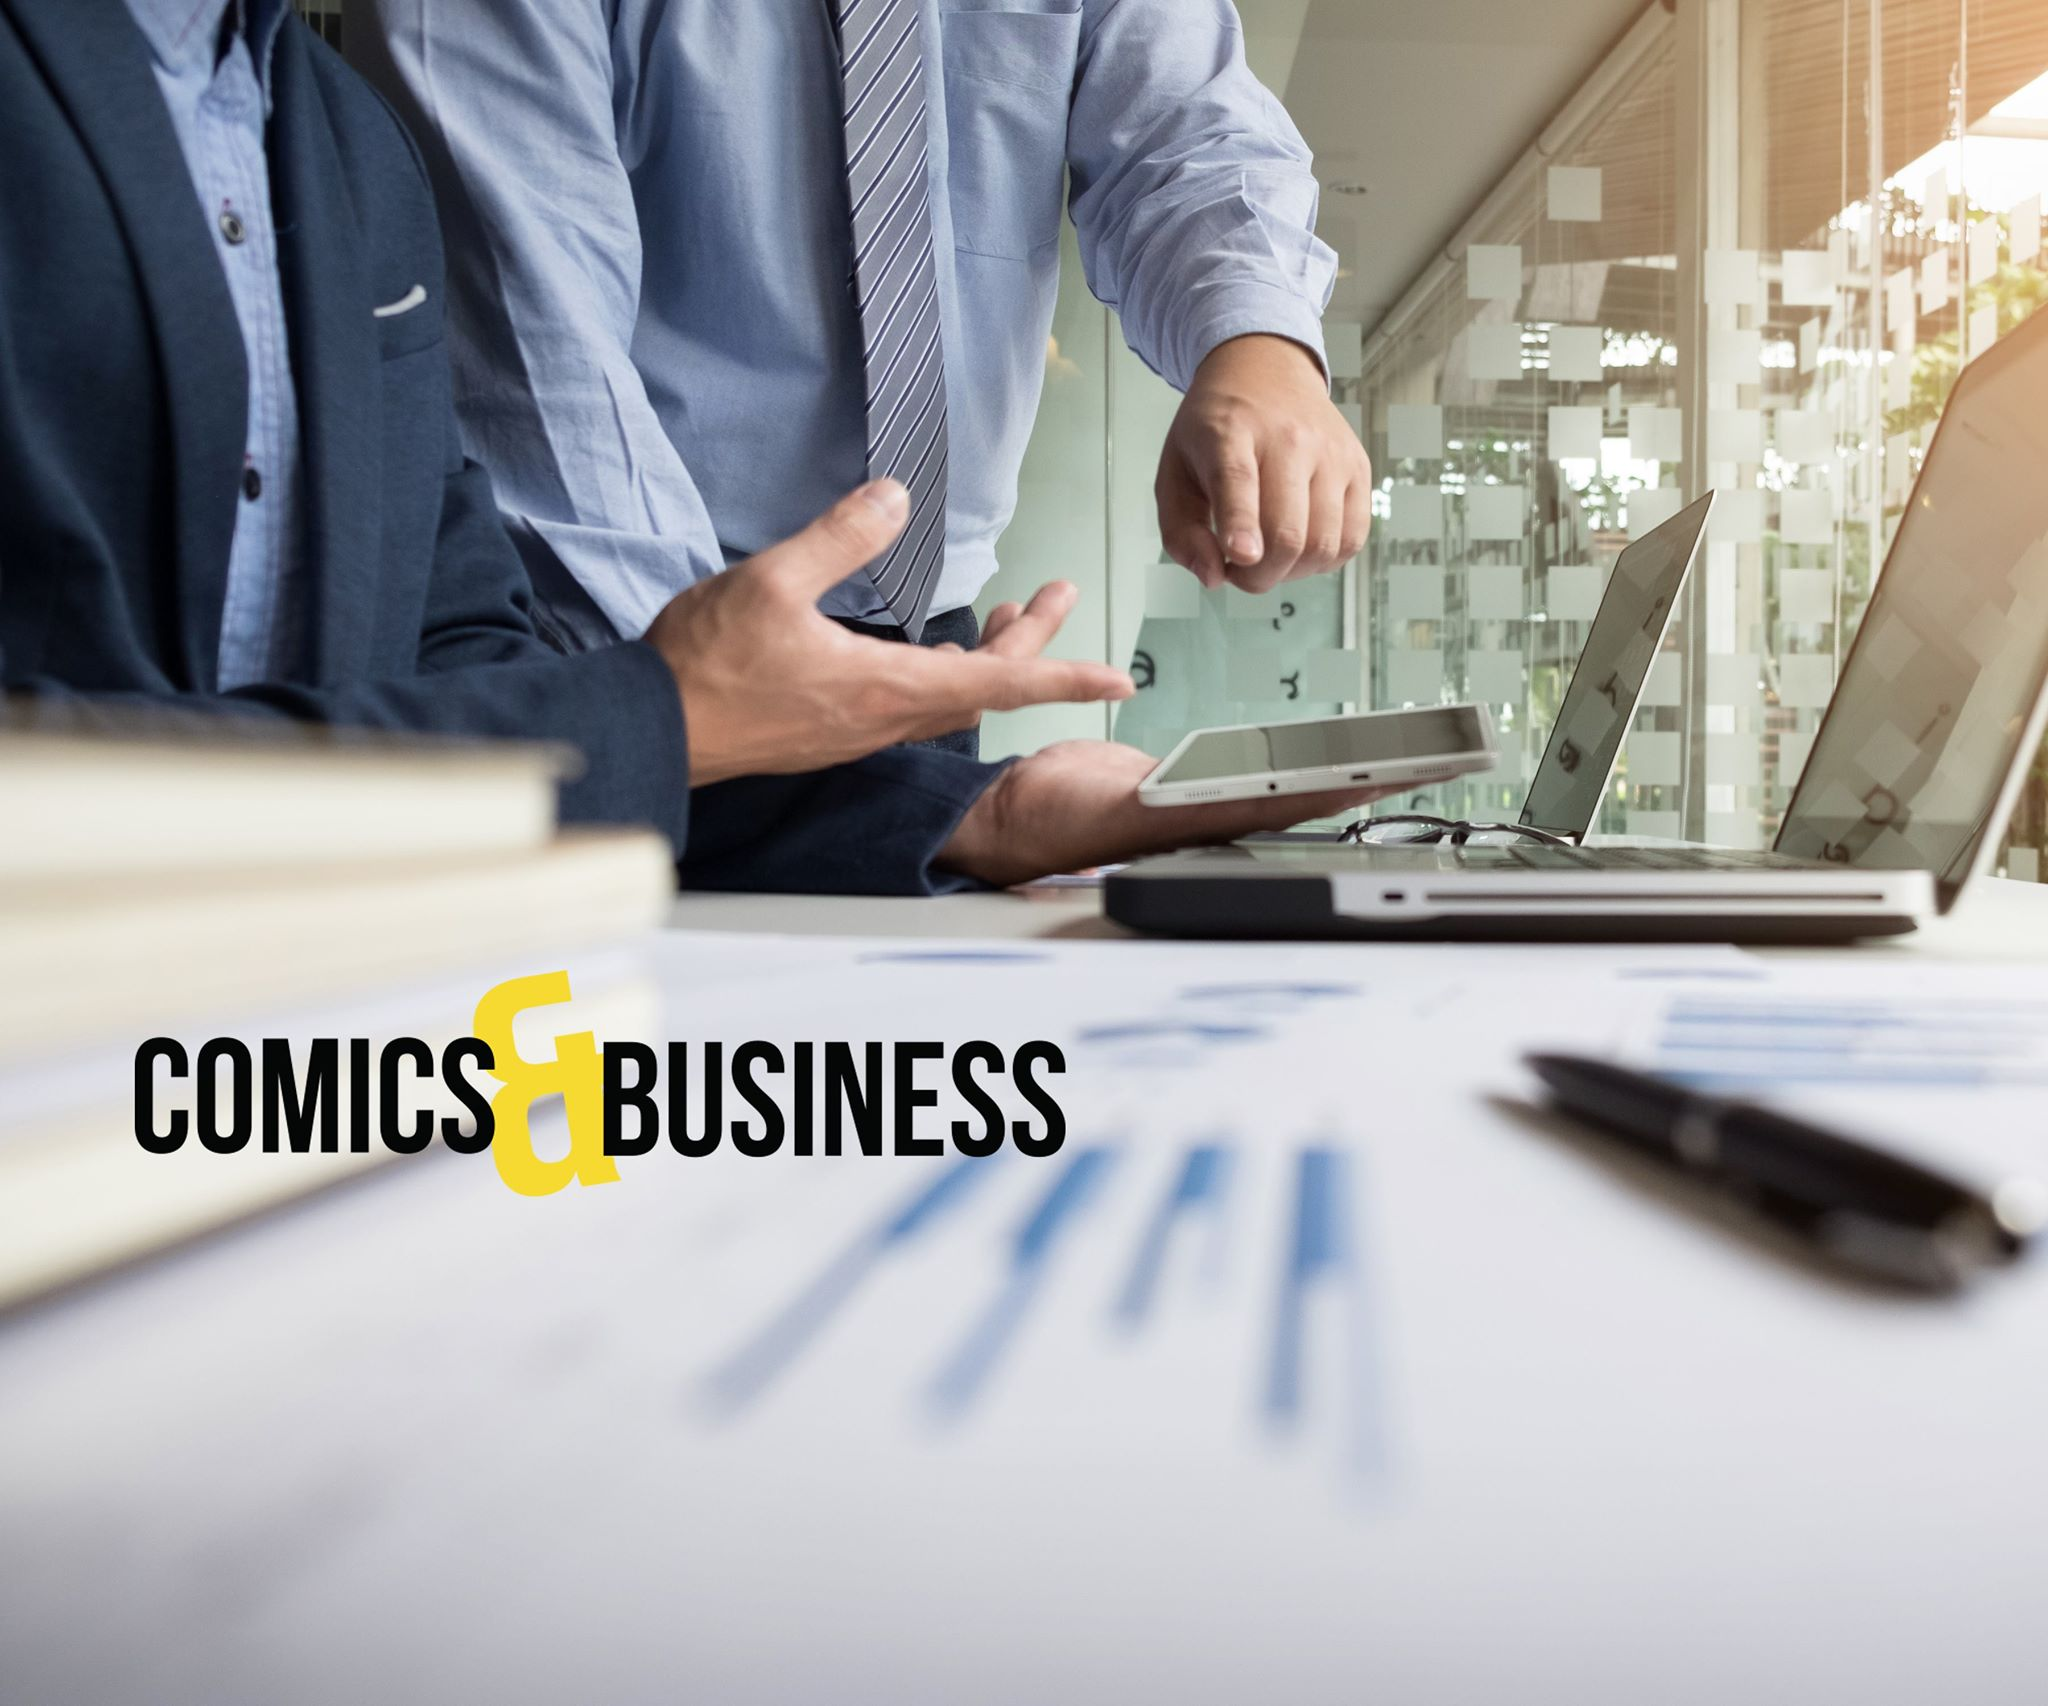 Comics&Business